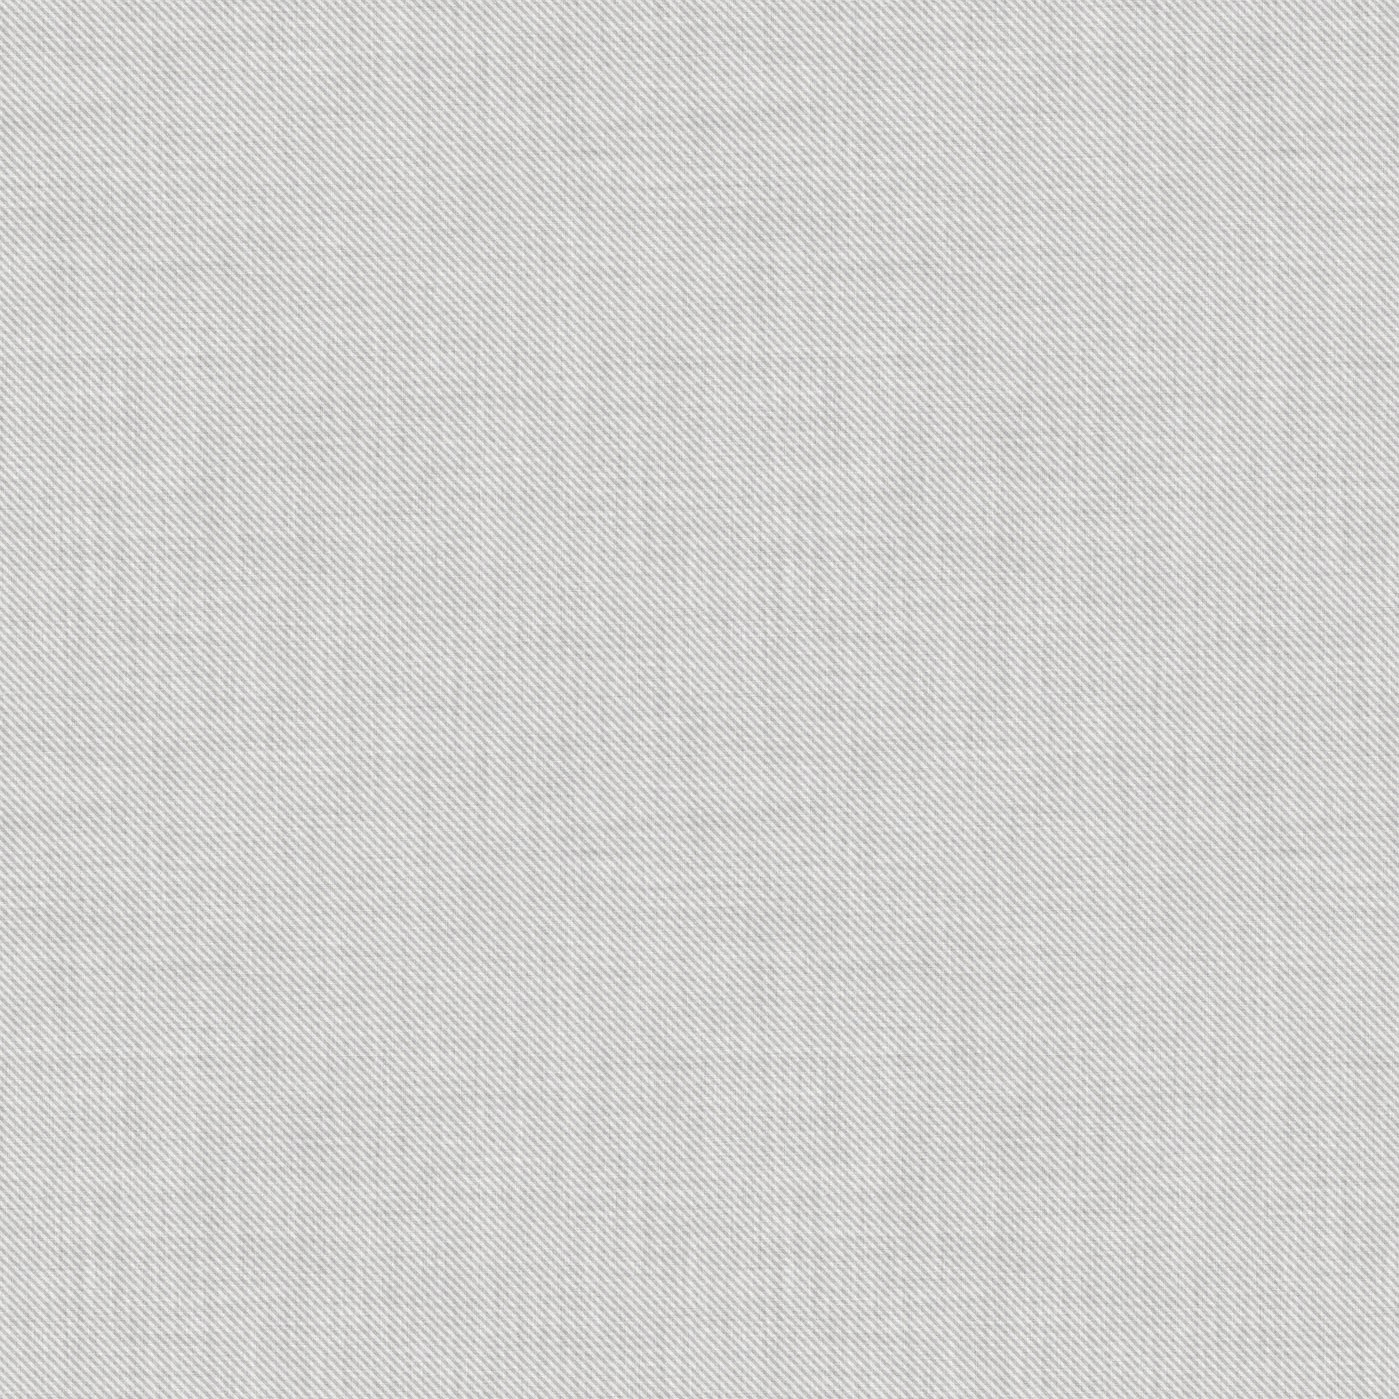 Gallery White Cloth Texture Seamless